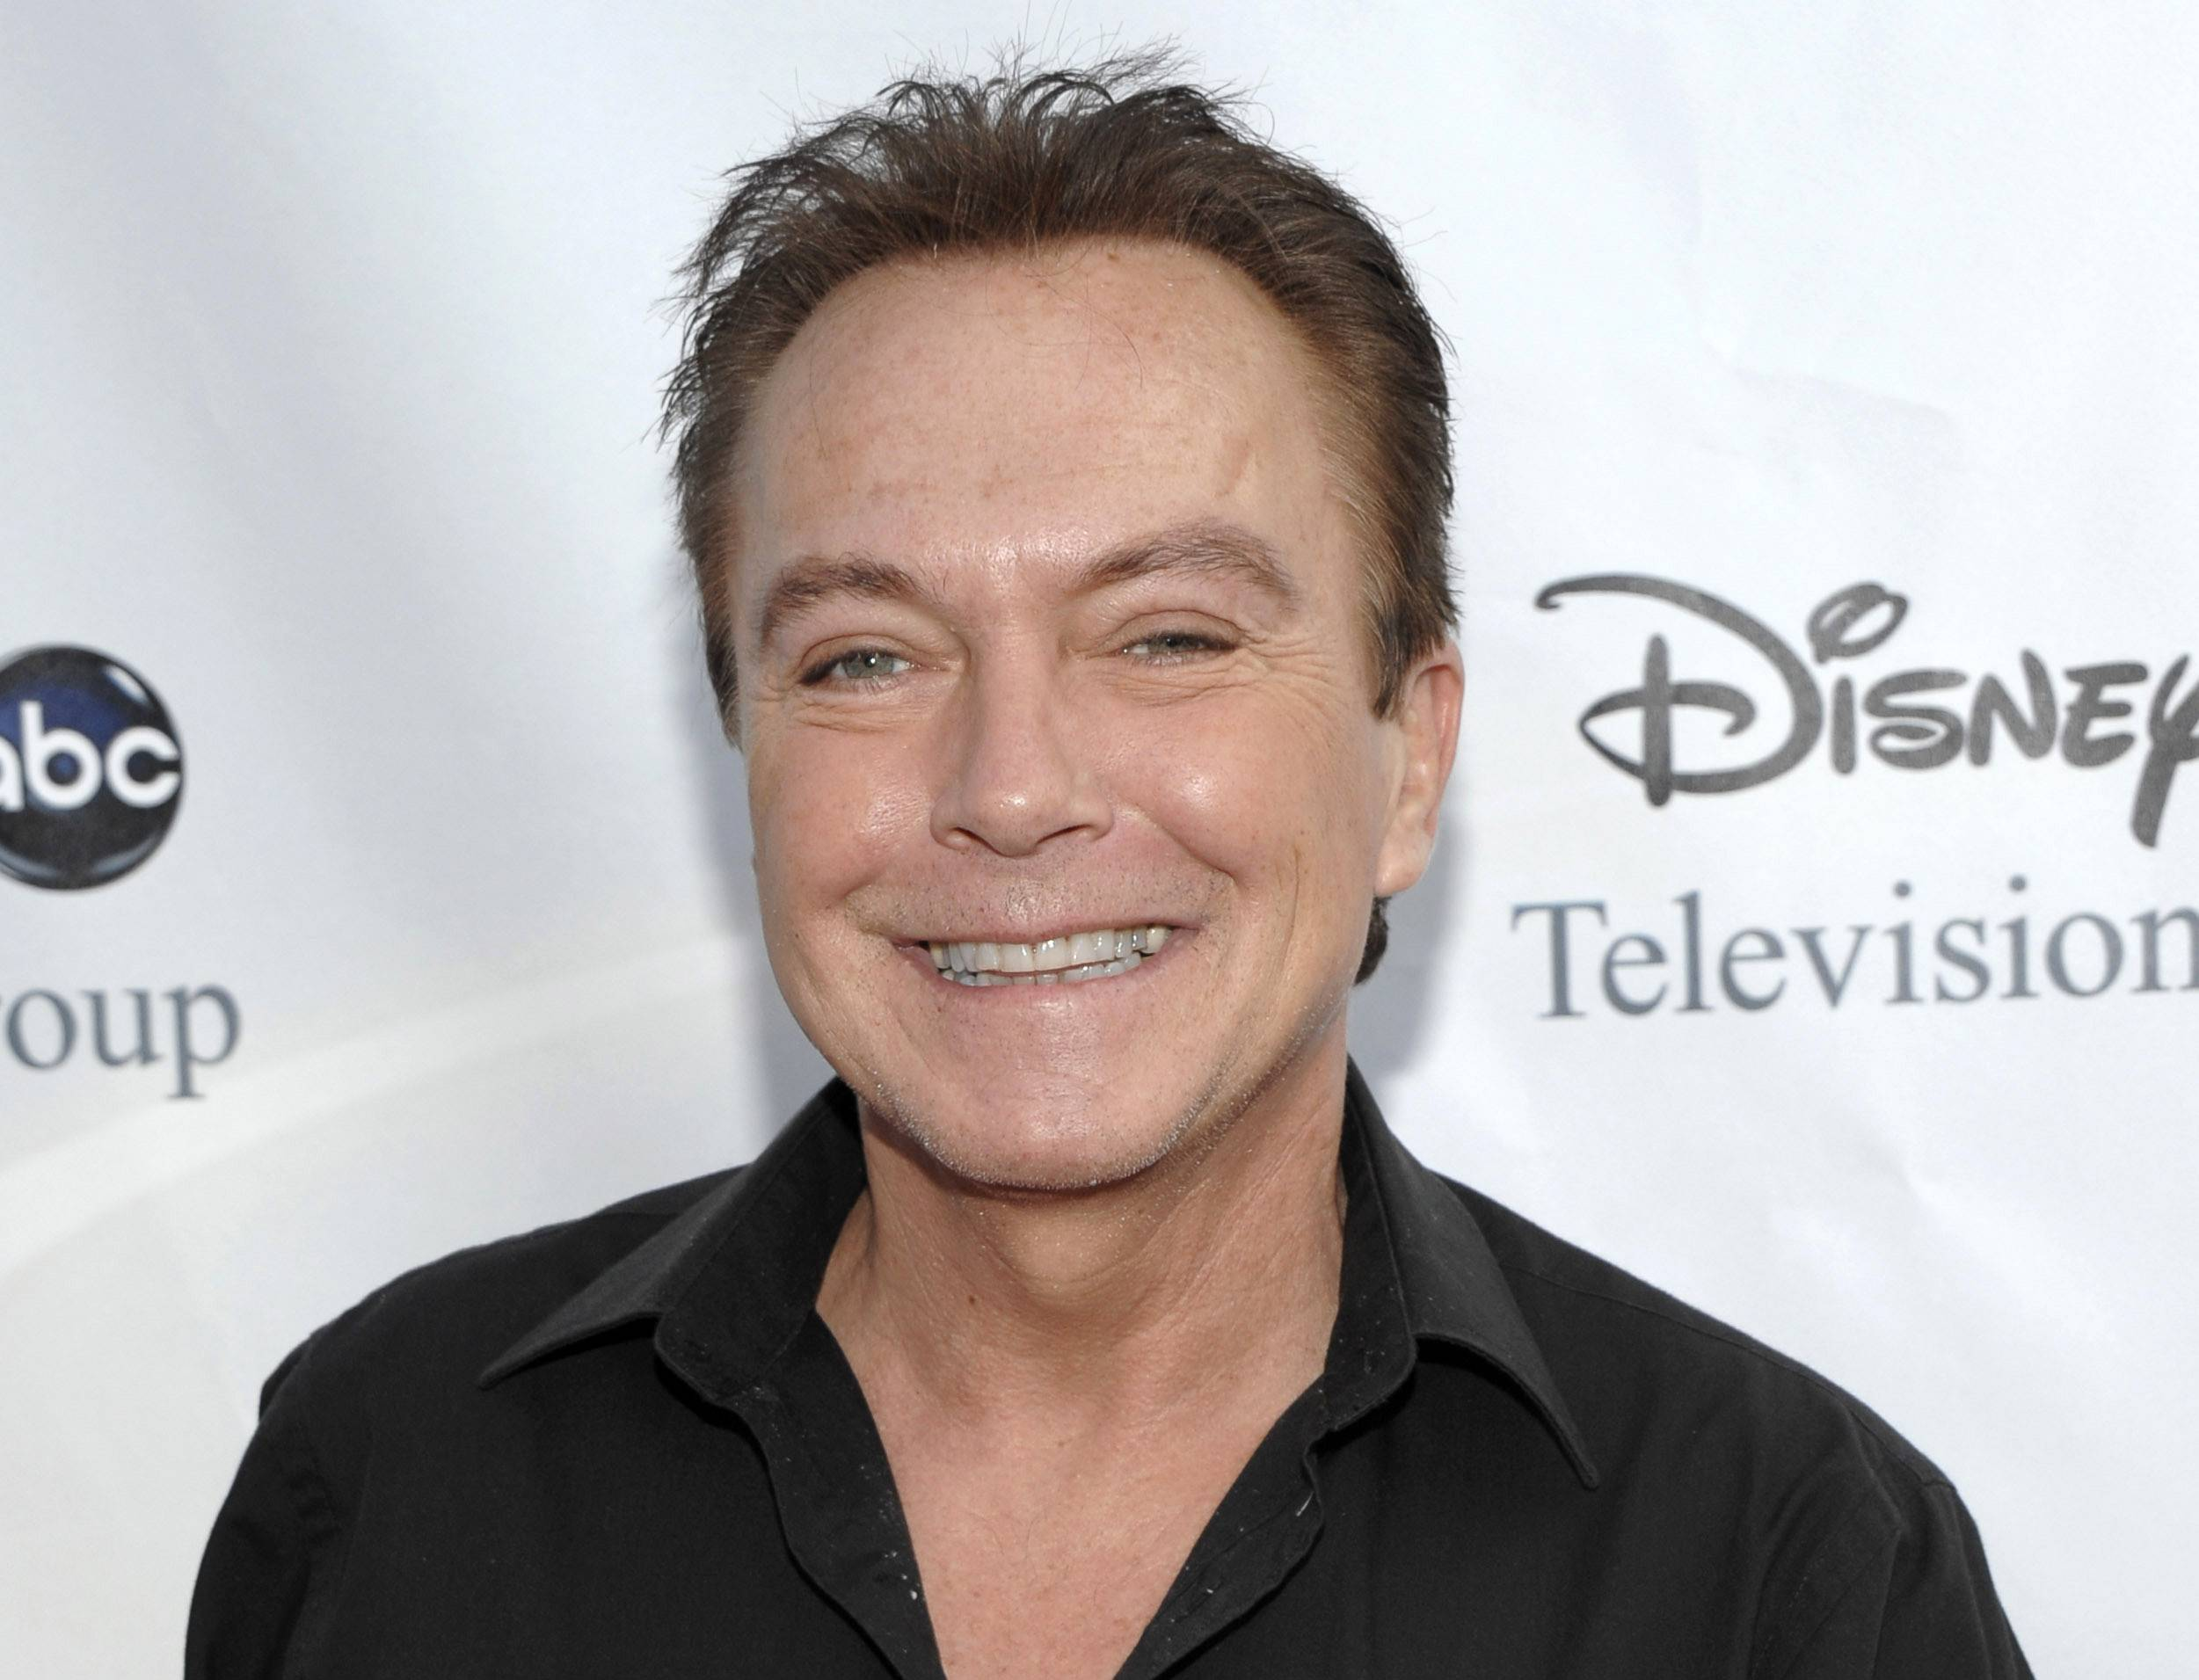 David Cassidy was sentenced by a Los Angeles judge on Monday to serve 90 days in rehab and five years on informal probation on a drunken driving case filed after the 1970s heartthrob's arrest earlier this year.